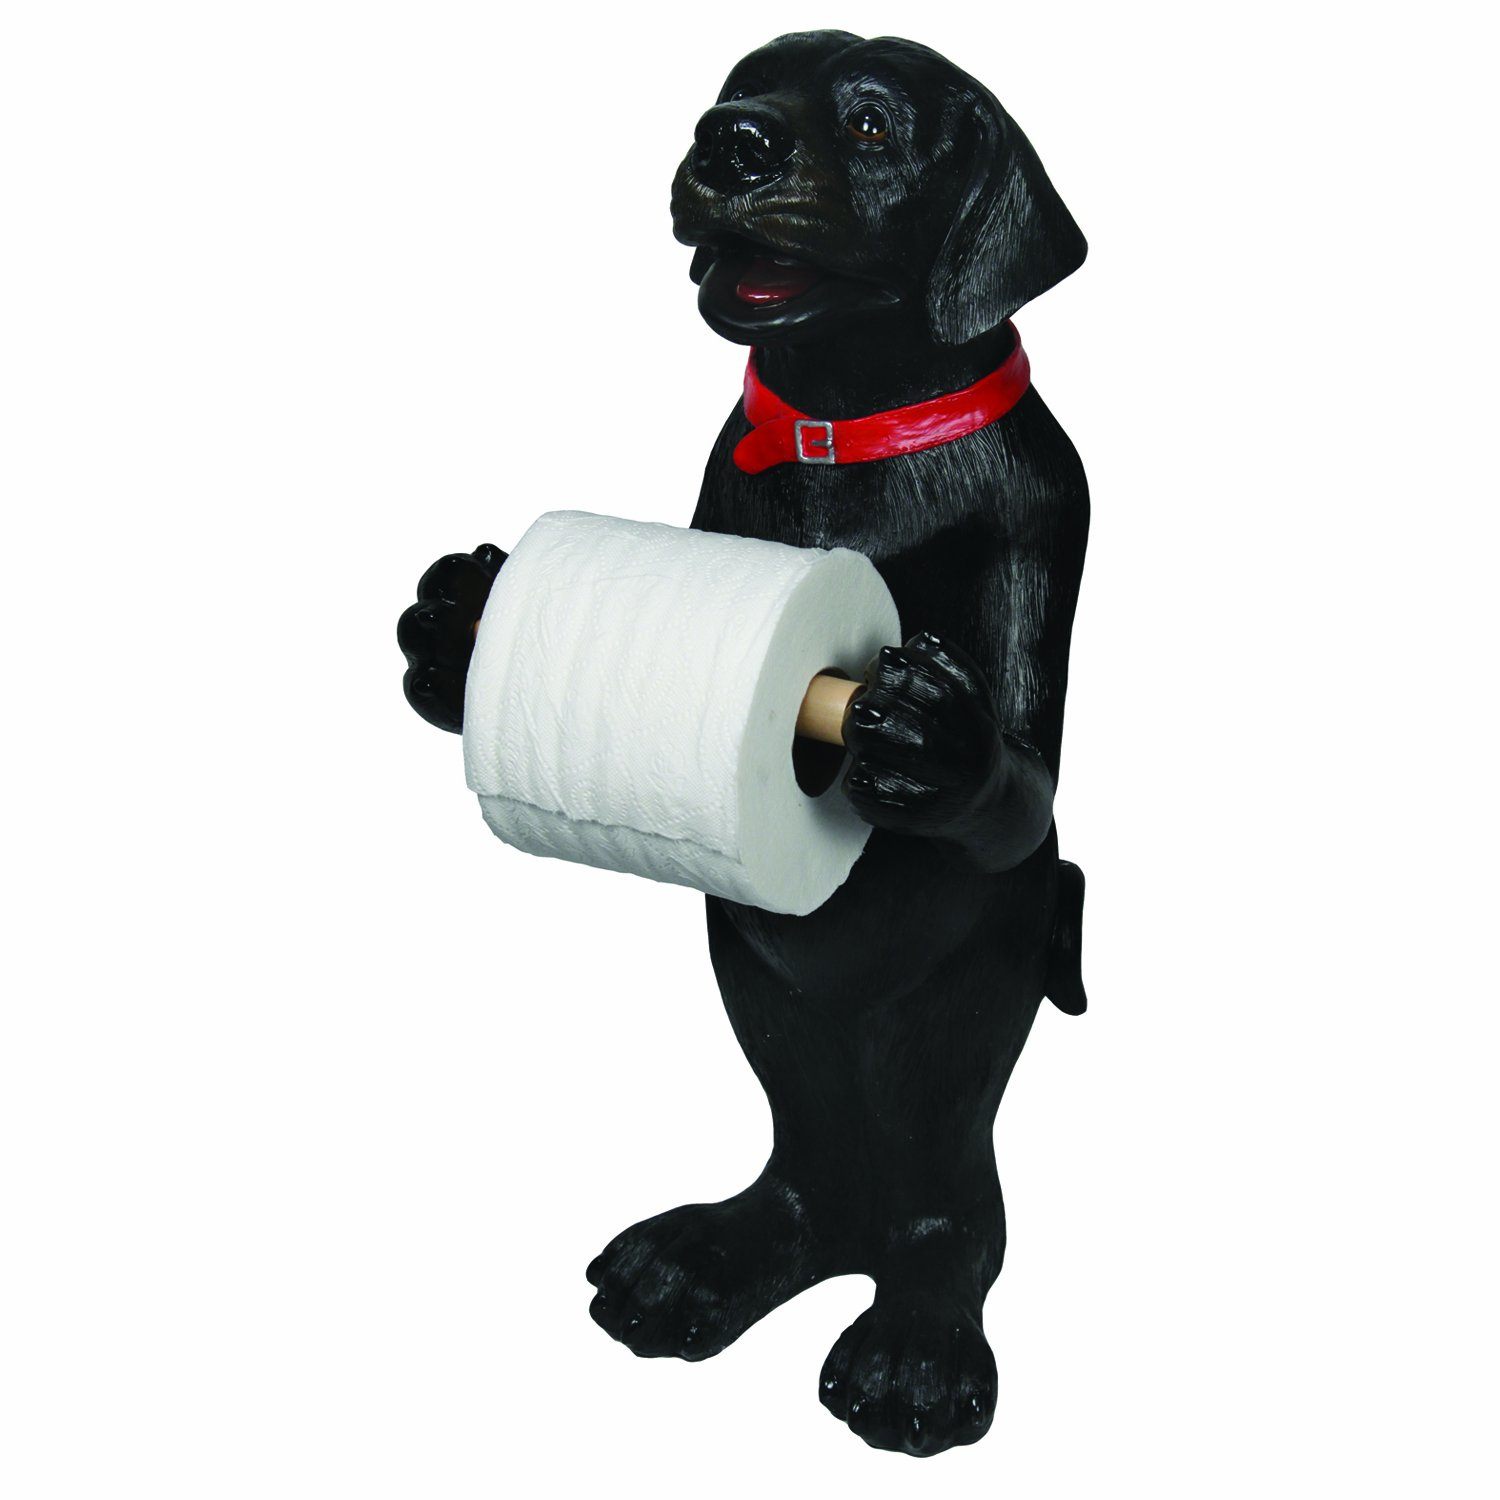 Modern toilet paper holders free standing - Amazon Com River S Edge Black Lab Standing Toilet Paper Holder Sports Outdoors